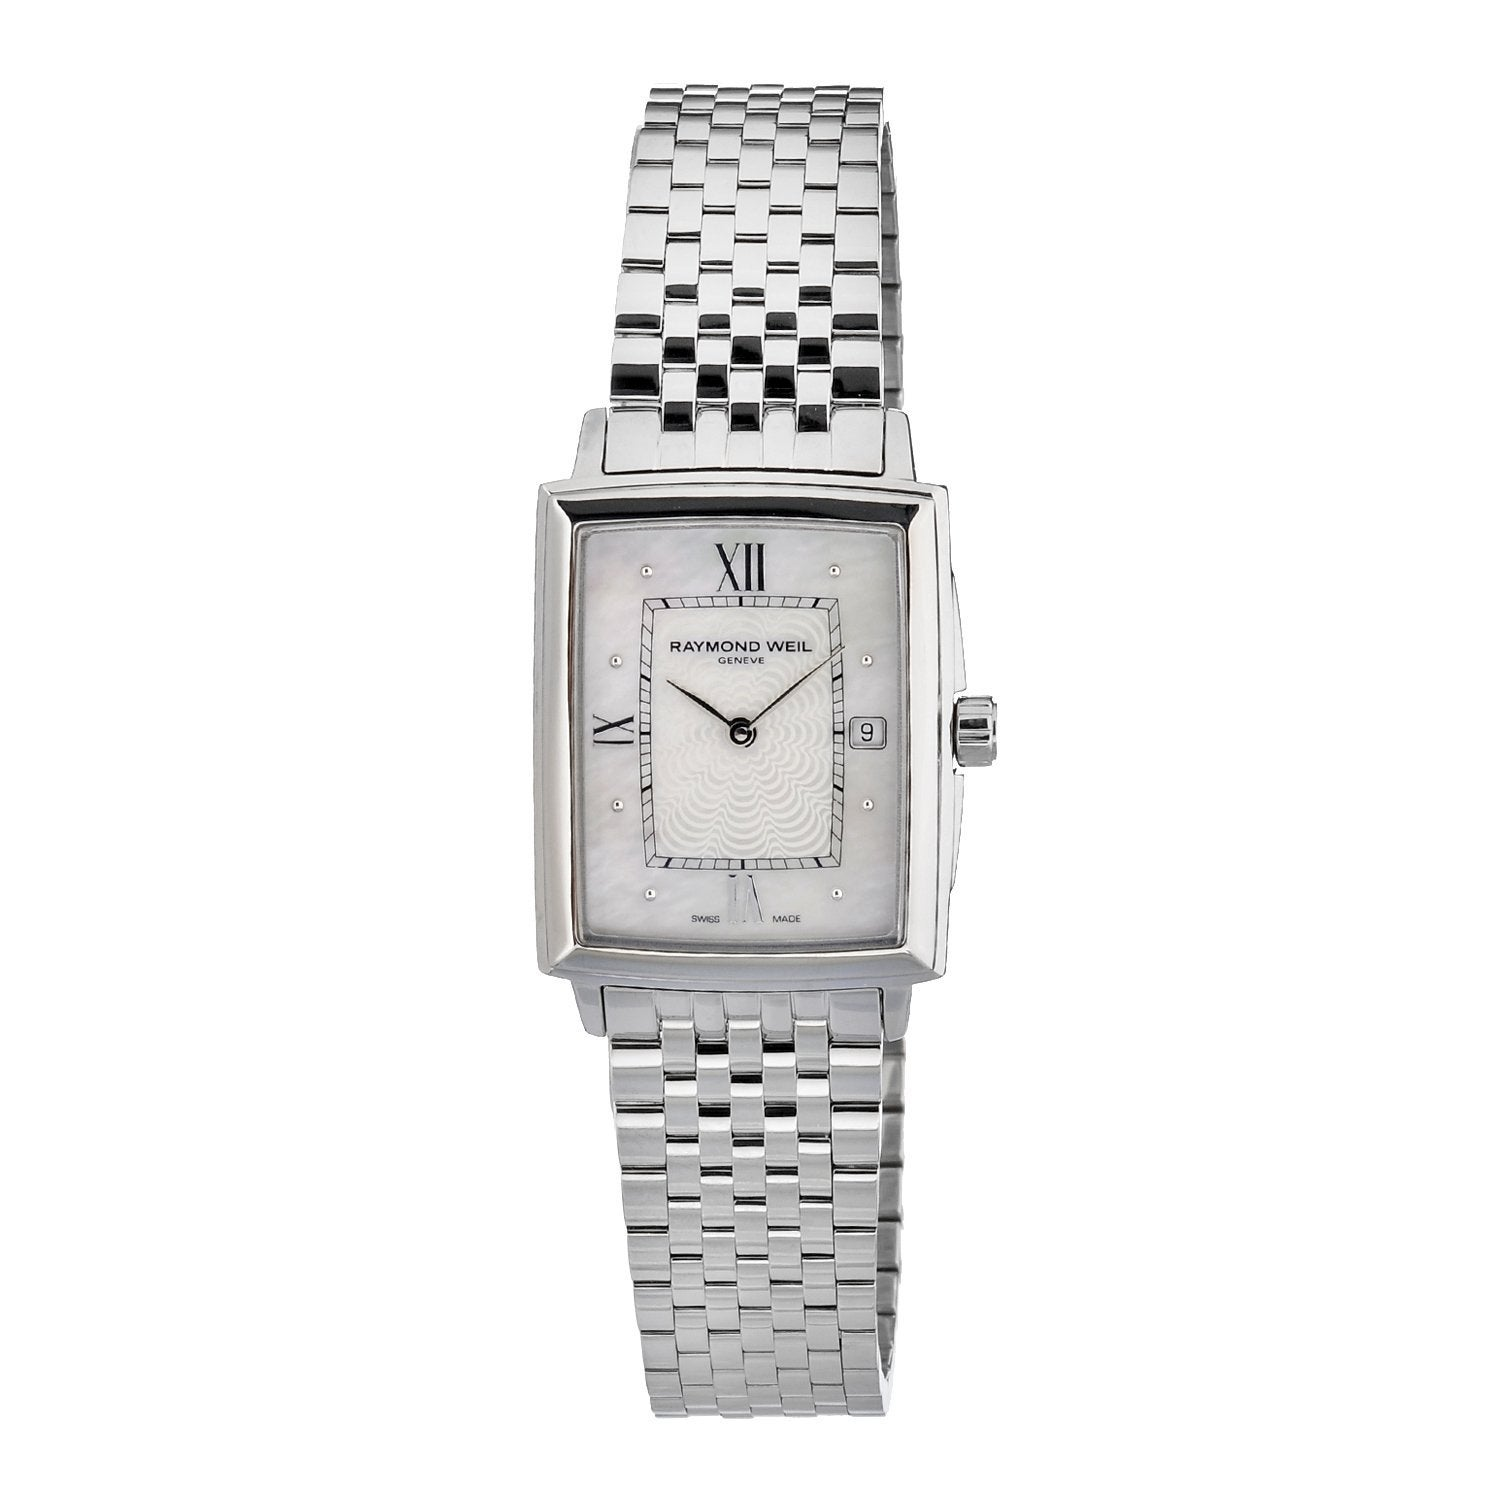 Raymond Weil Women's Stainless Steel Mother of Pearl Watch